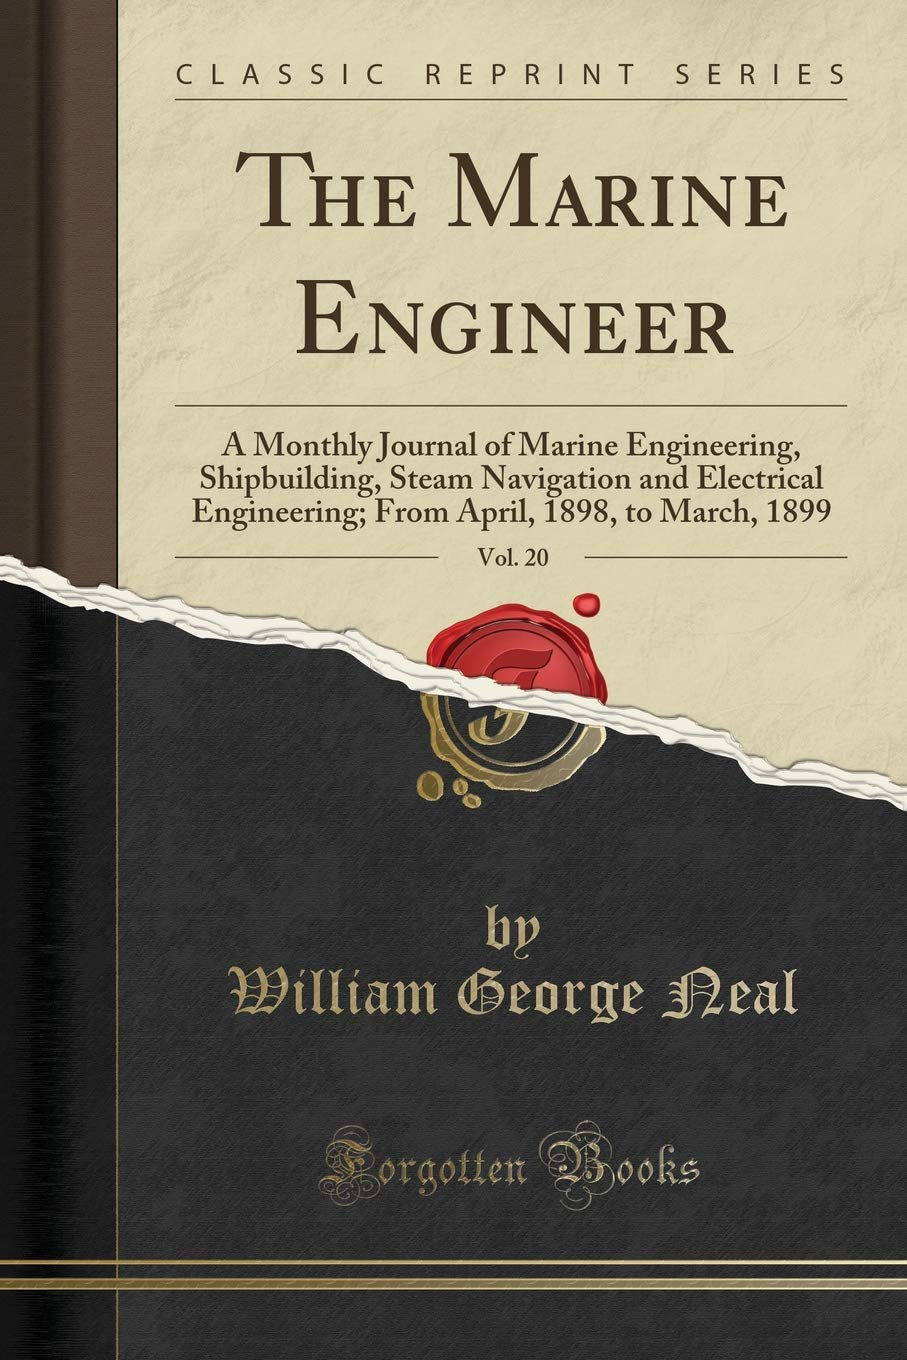 Download The Marine Engineer, Vol. 20: A Monthly Journal of Marine Engineering, Shipbuilding, Steam Navigation and Electrical Engineering; From April, 1898, to March, 1899 (Classic Reprint) pdf